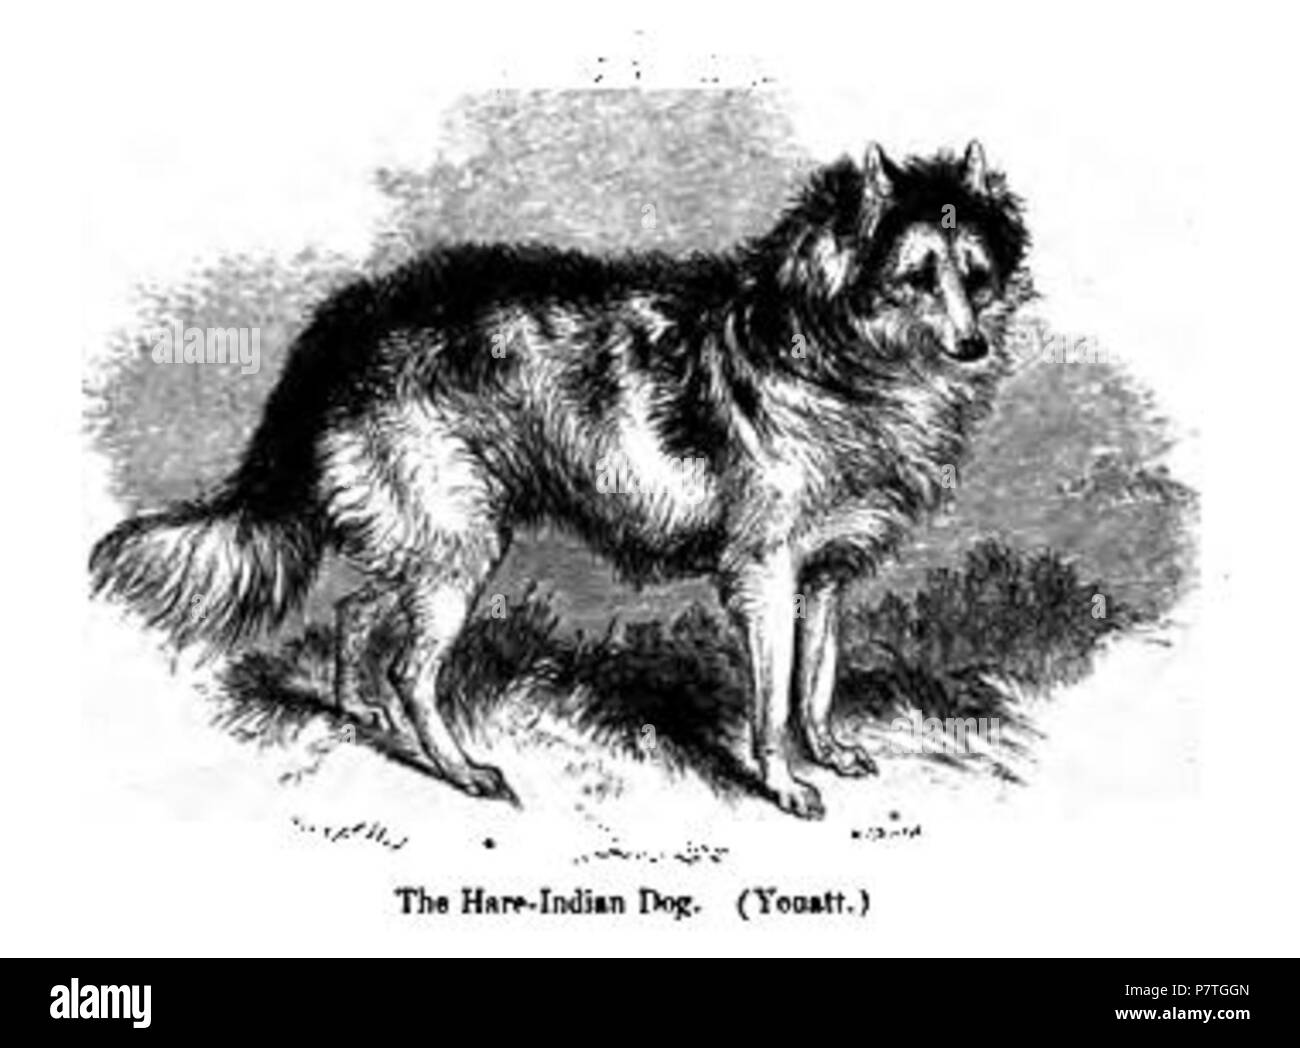 hare indian dog